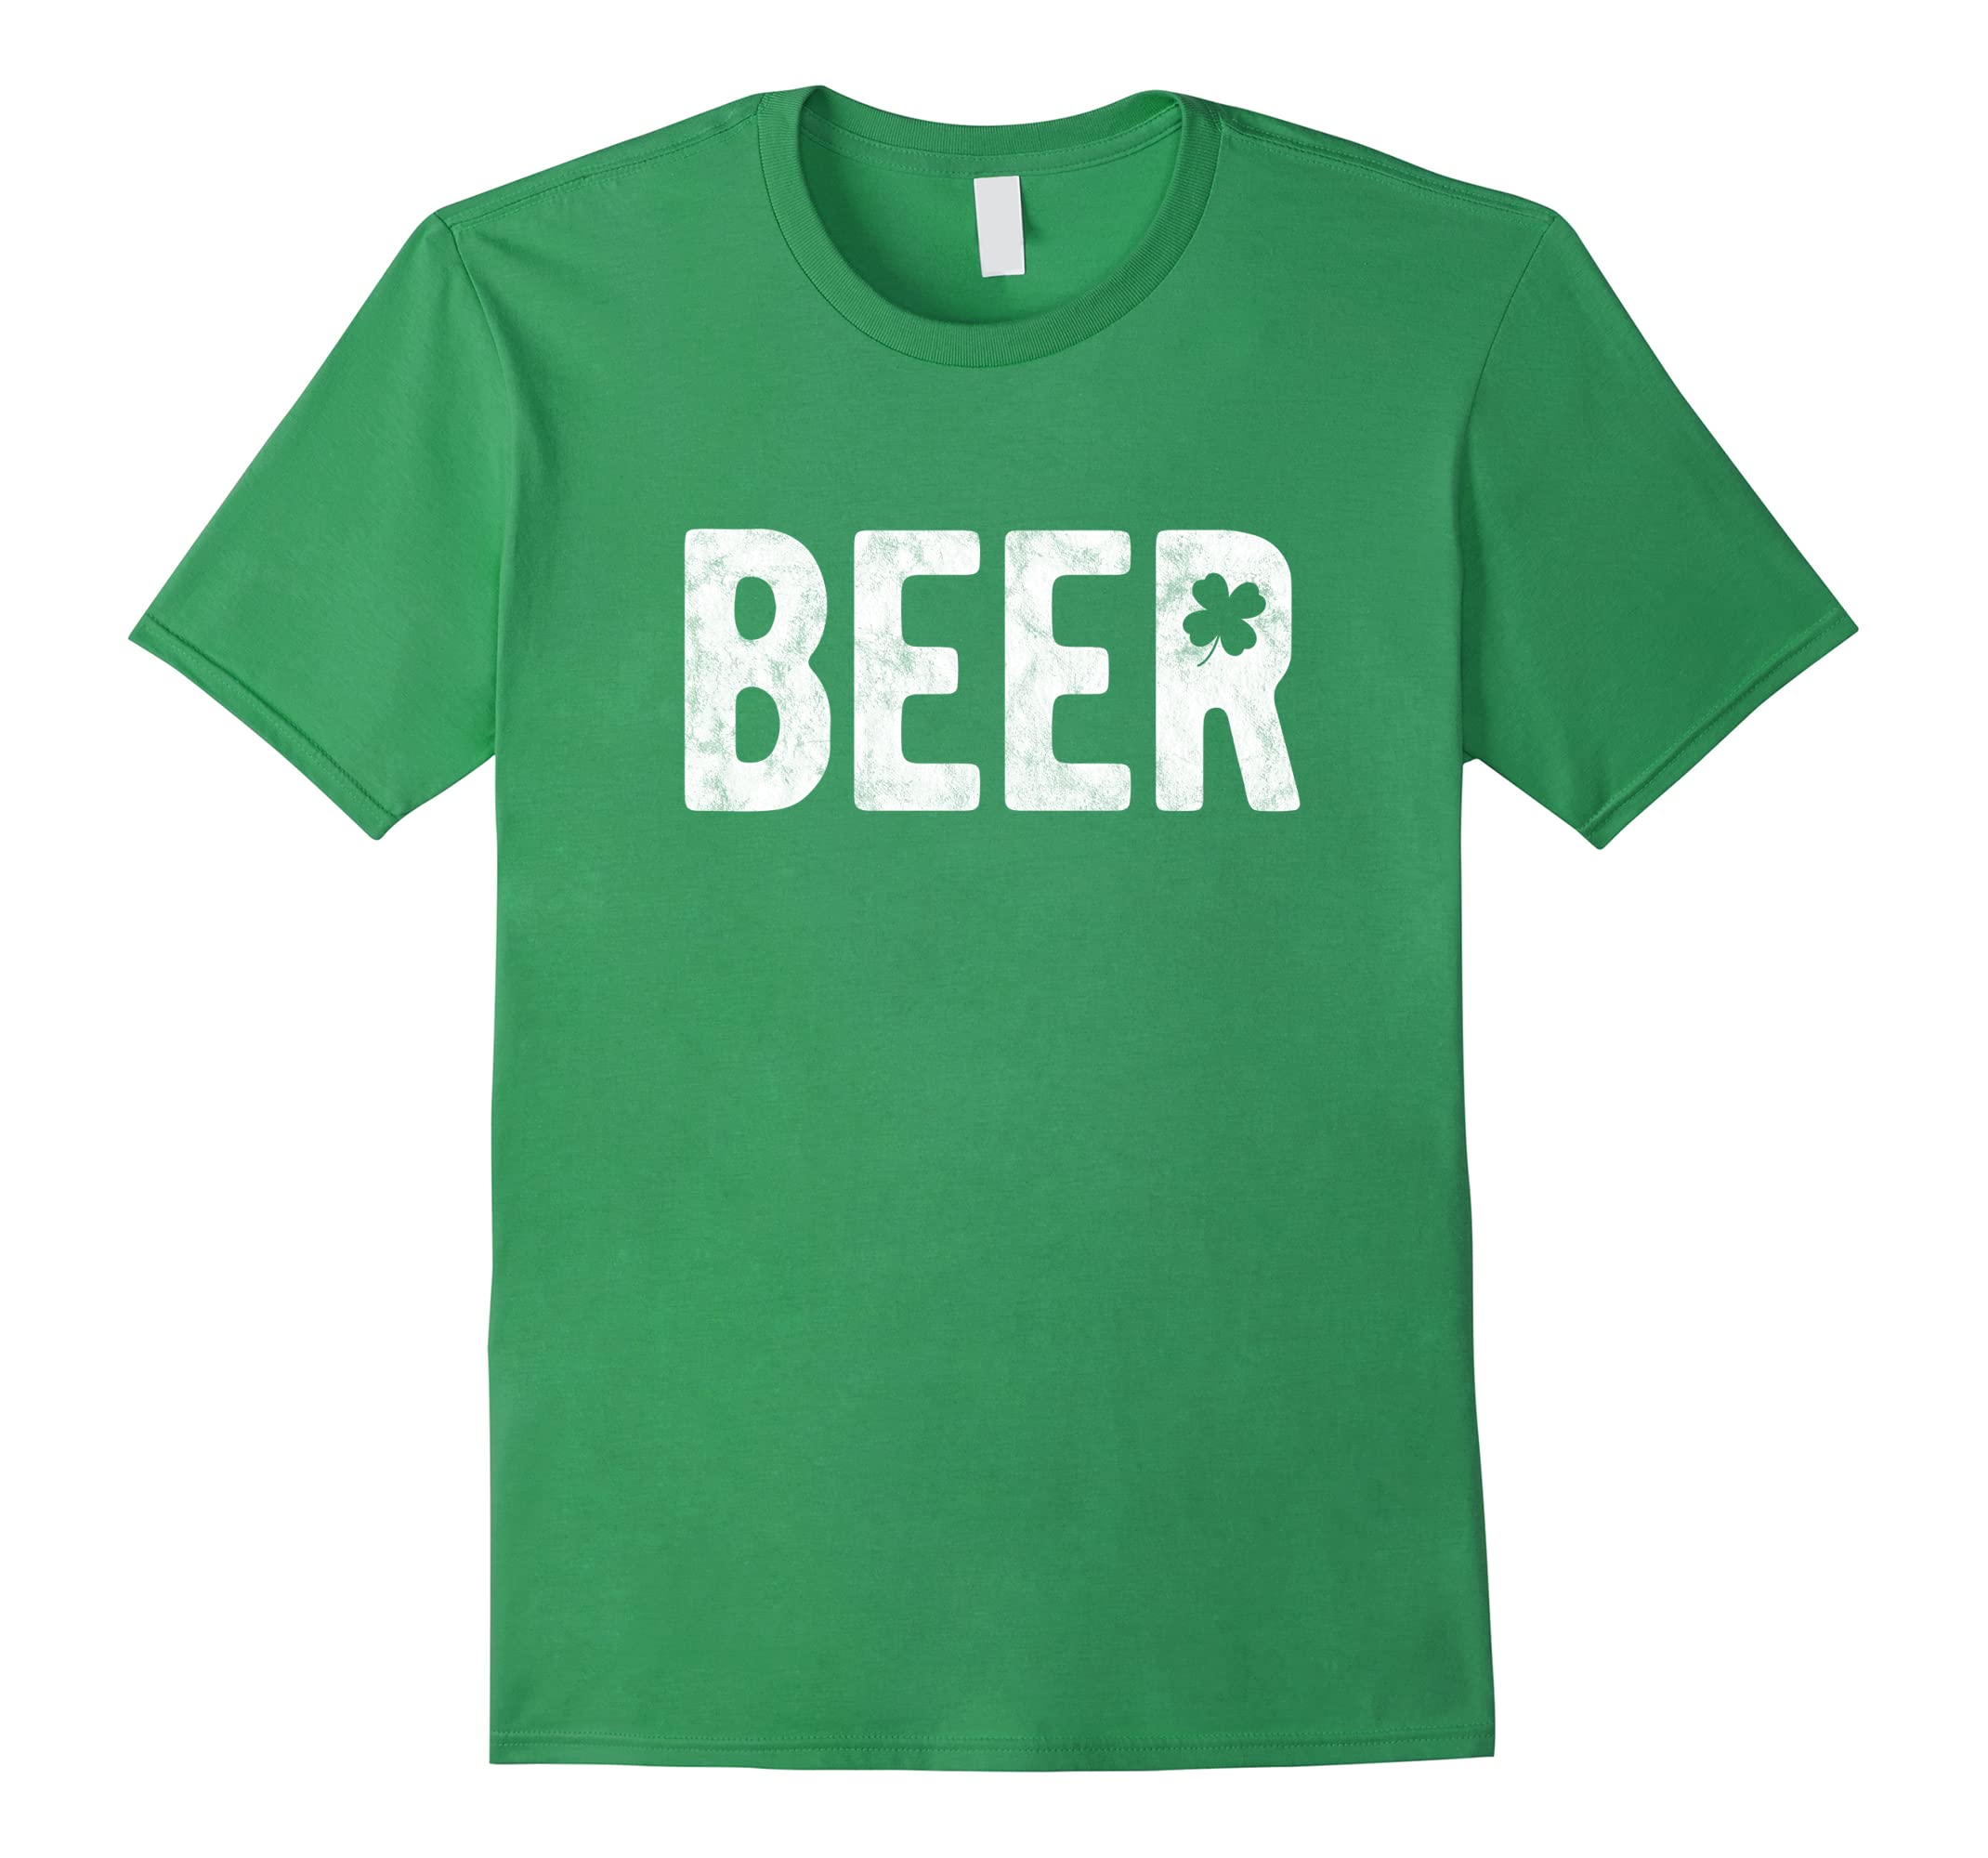 Beer St Patricks Day Drinking Shirt Alcohol Party Tshirt Men-RT